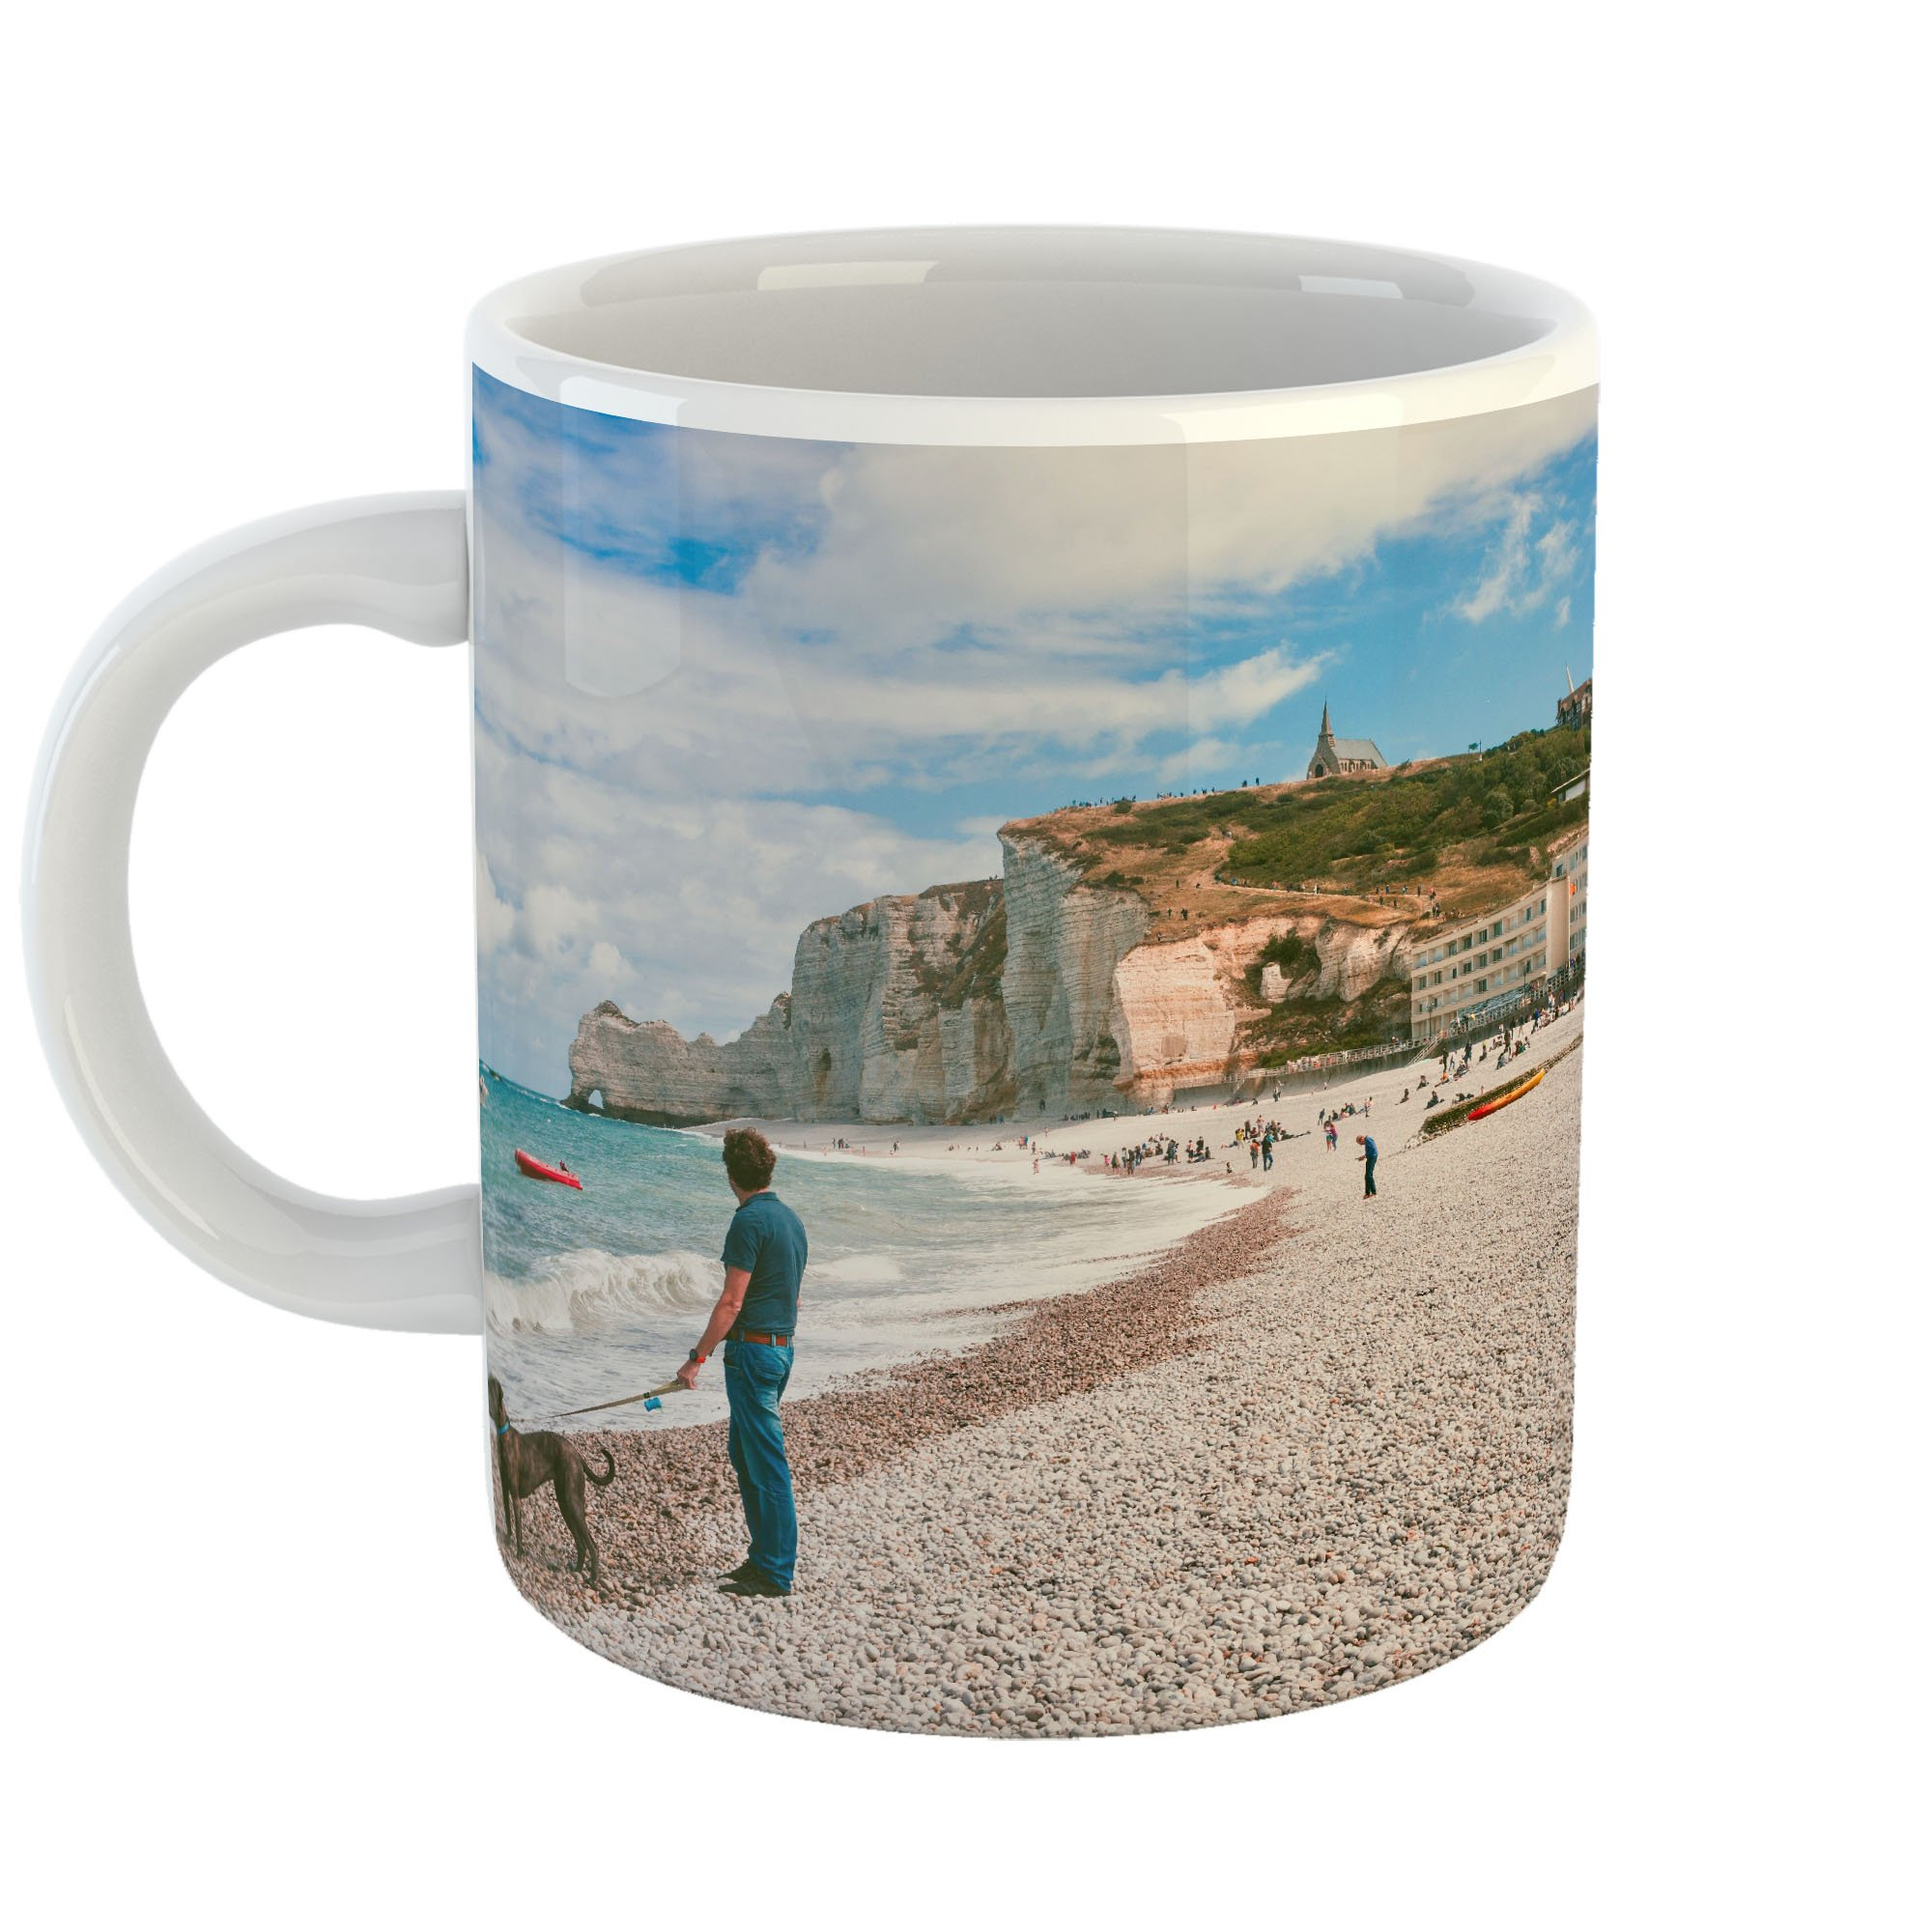 Westlake Art - Swimming Hotel - 11oz Coffee Cup Mug - Modern Picture Photography Artwork Home Office Birthday Gift - 11 Ounce (3BC9-BEE60)